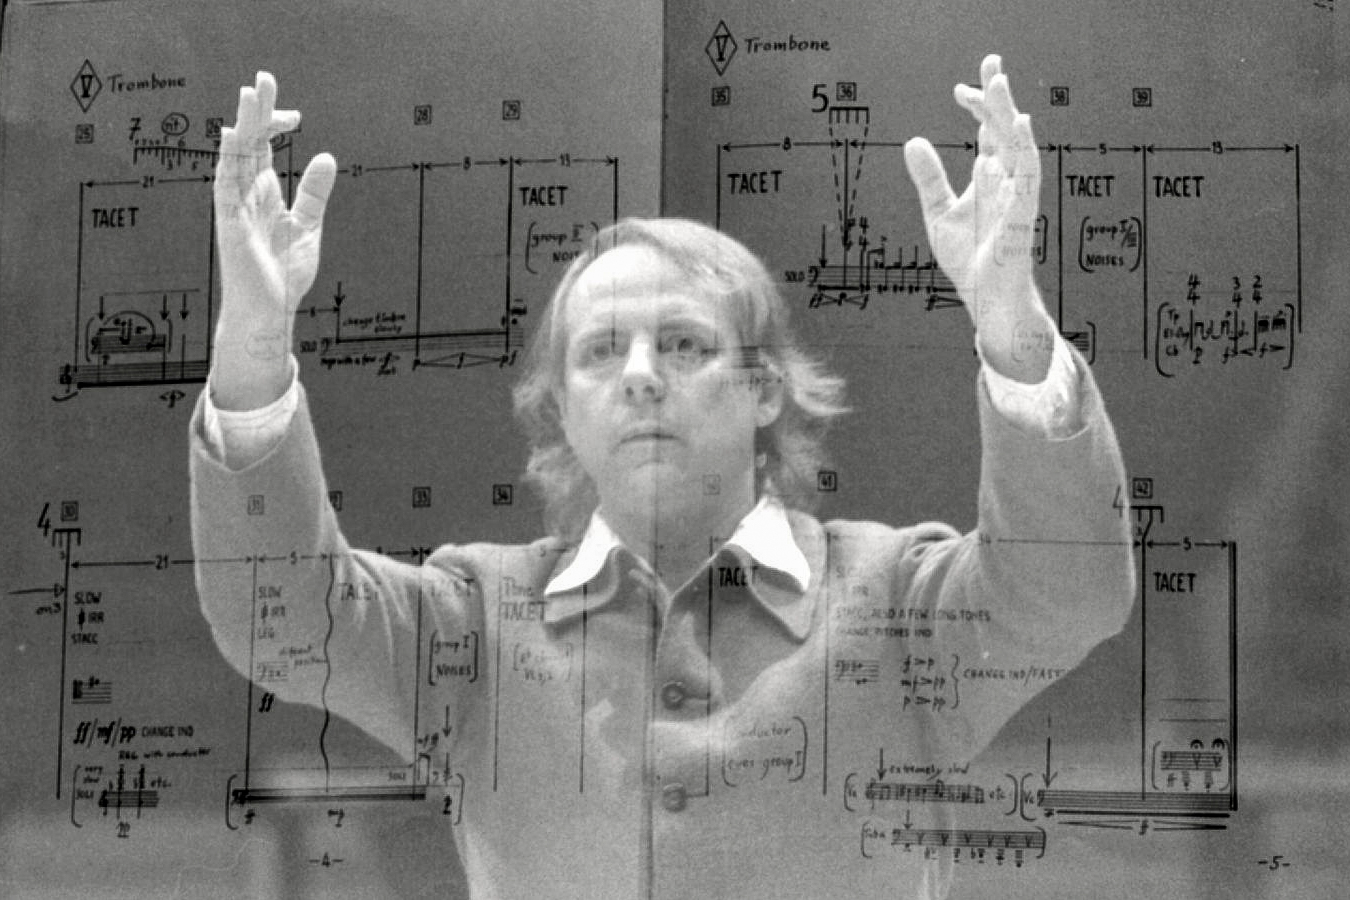 Karlheinz Stockhausen en surimpression de la partition d'une de ses composition, Strasbourg, 1980 (Wikimedia Commons)